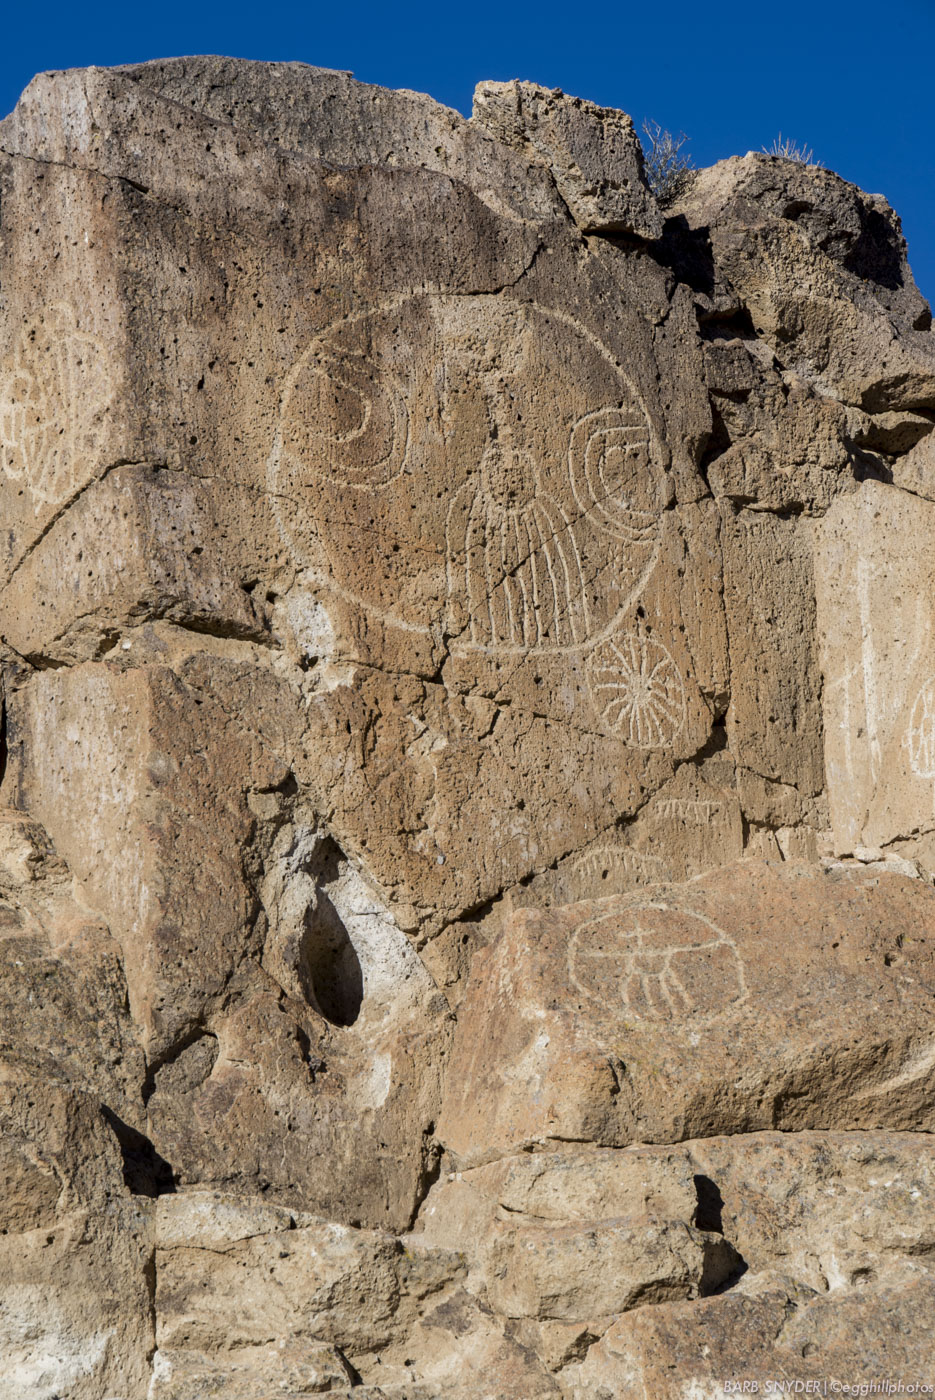 I always see spaceships when visiting the petroglyphs!